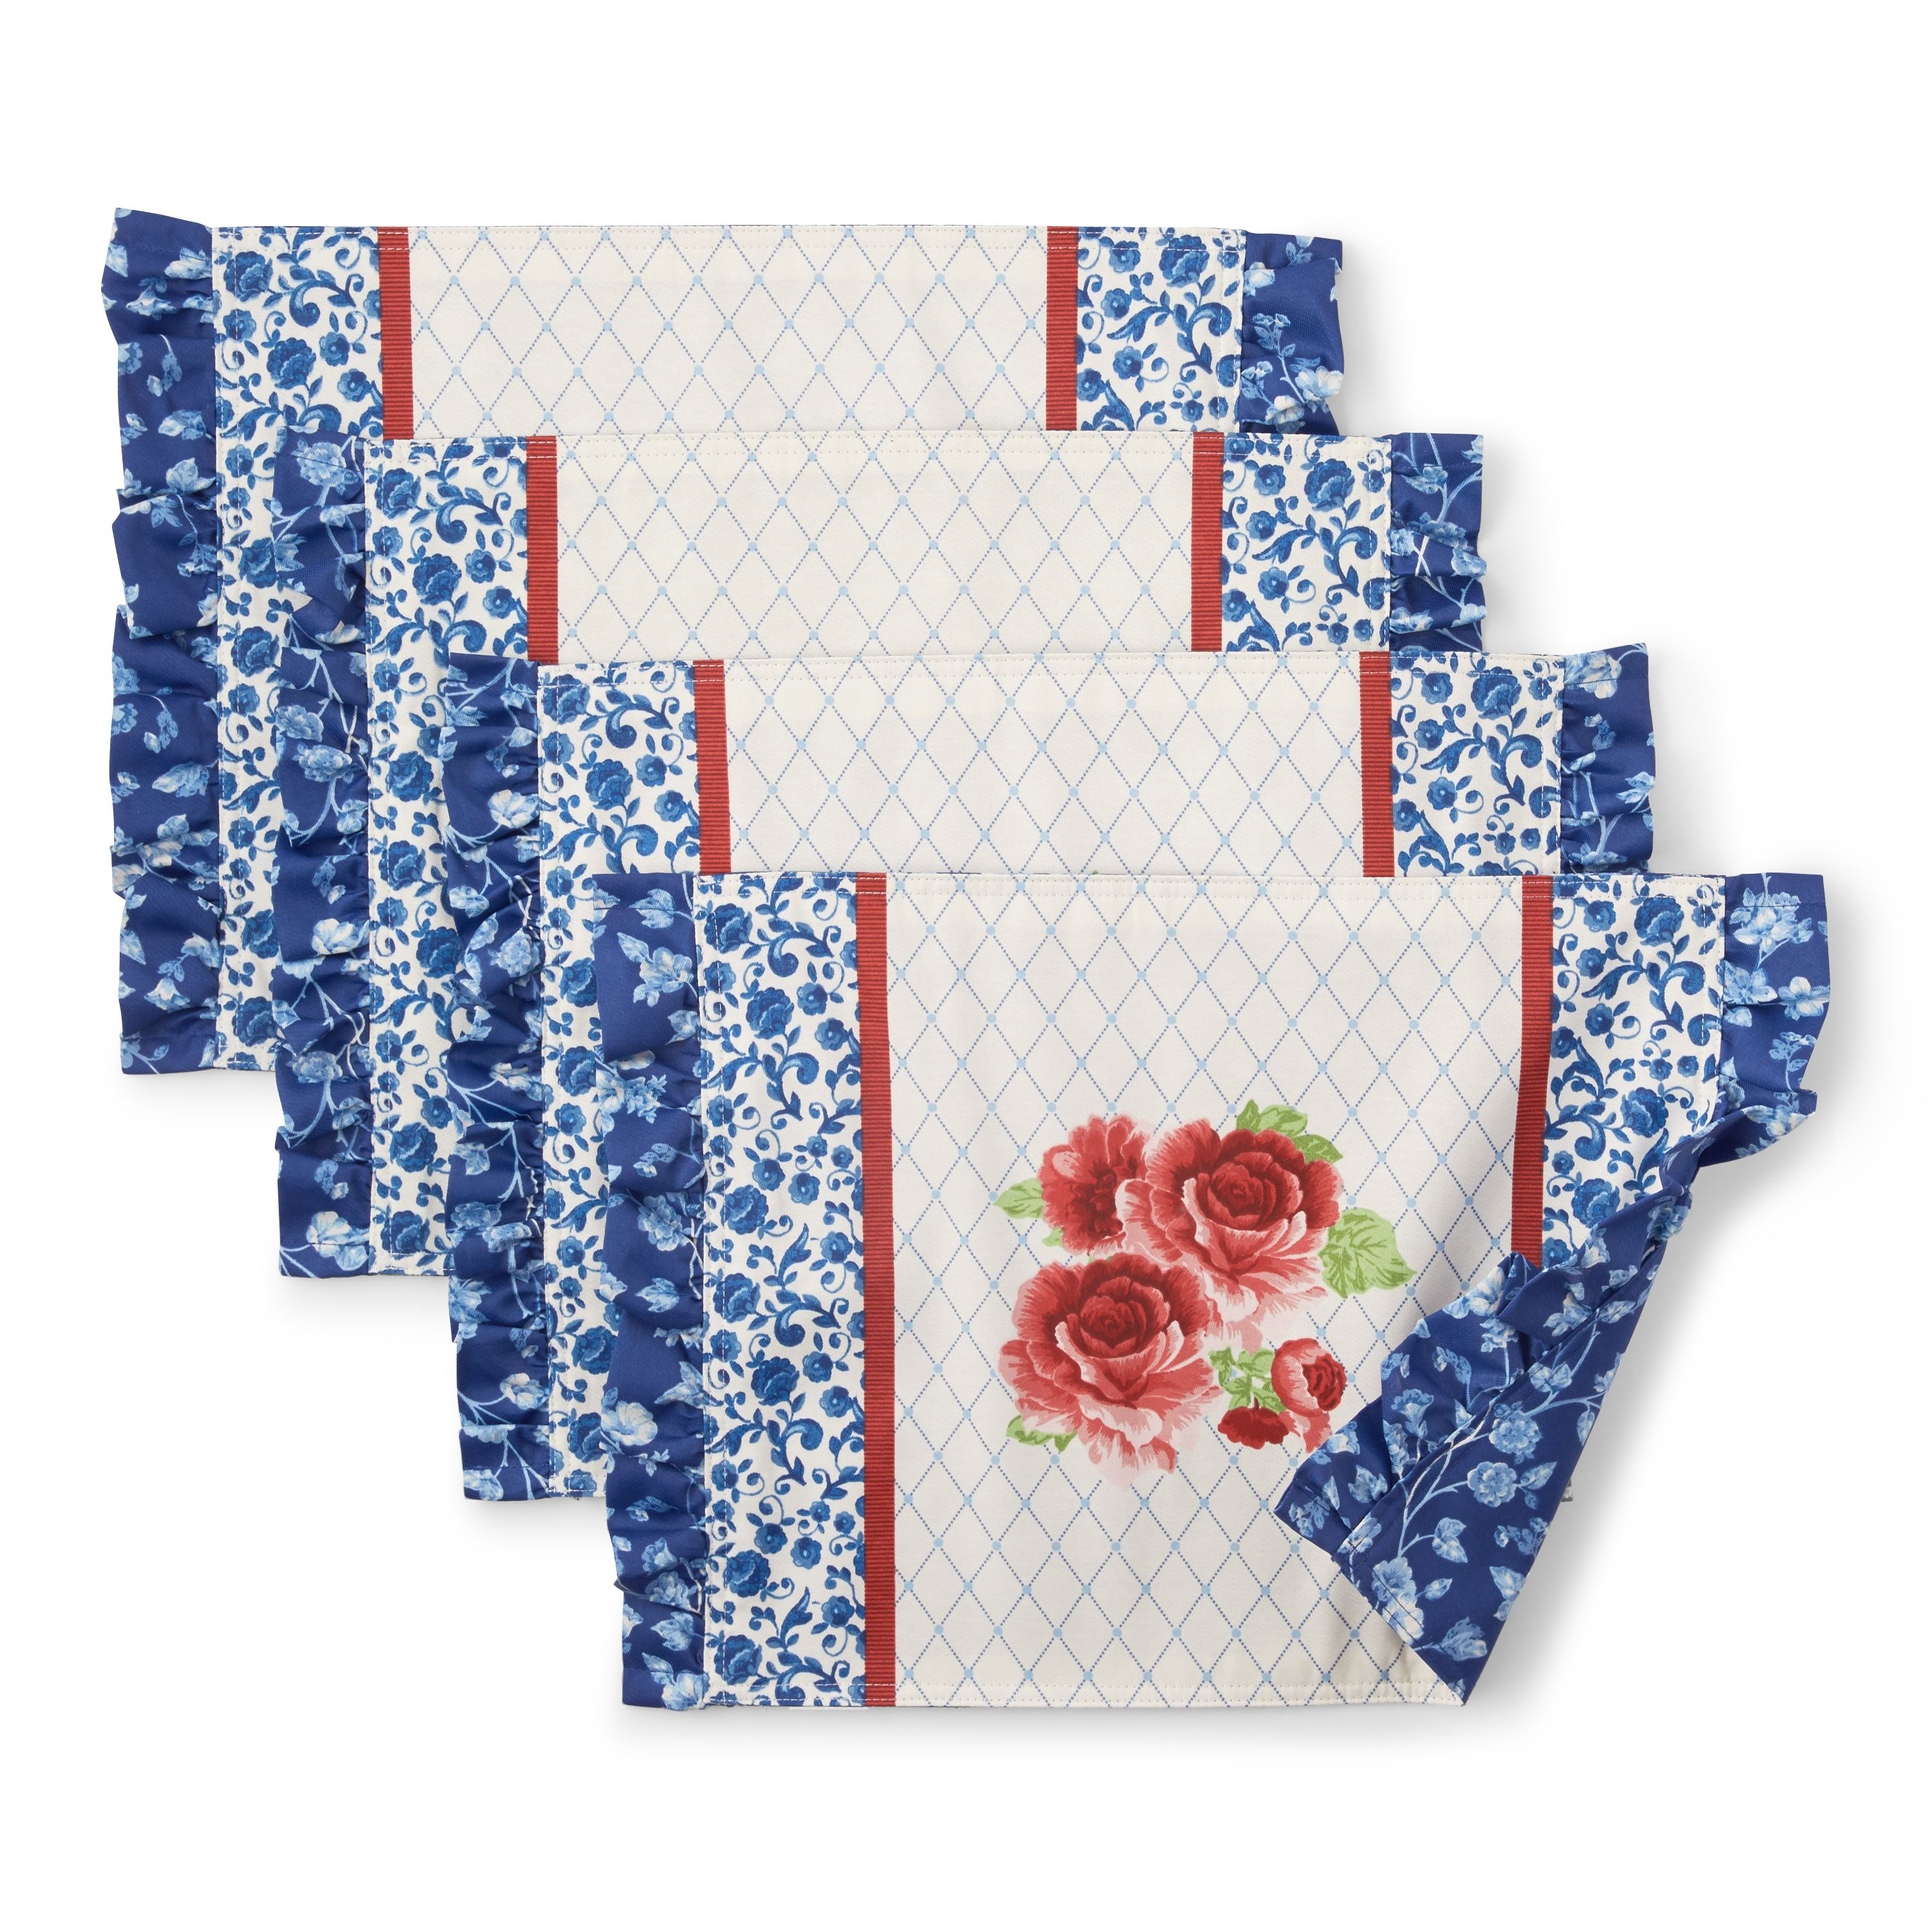 The Pioneer Woman Frontier Rose Ruffle Trim Placemats Set Of 4 Walmart Com In 2021 Floral Placemats Pioneer Woman Walmart Pioneer Woman Kitchen